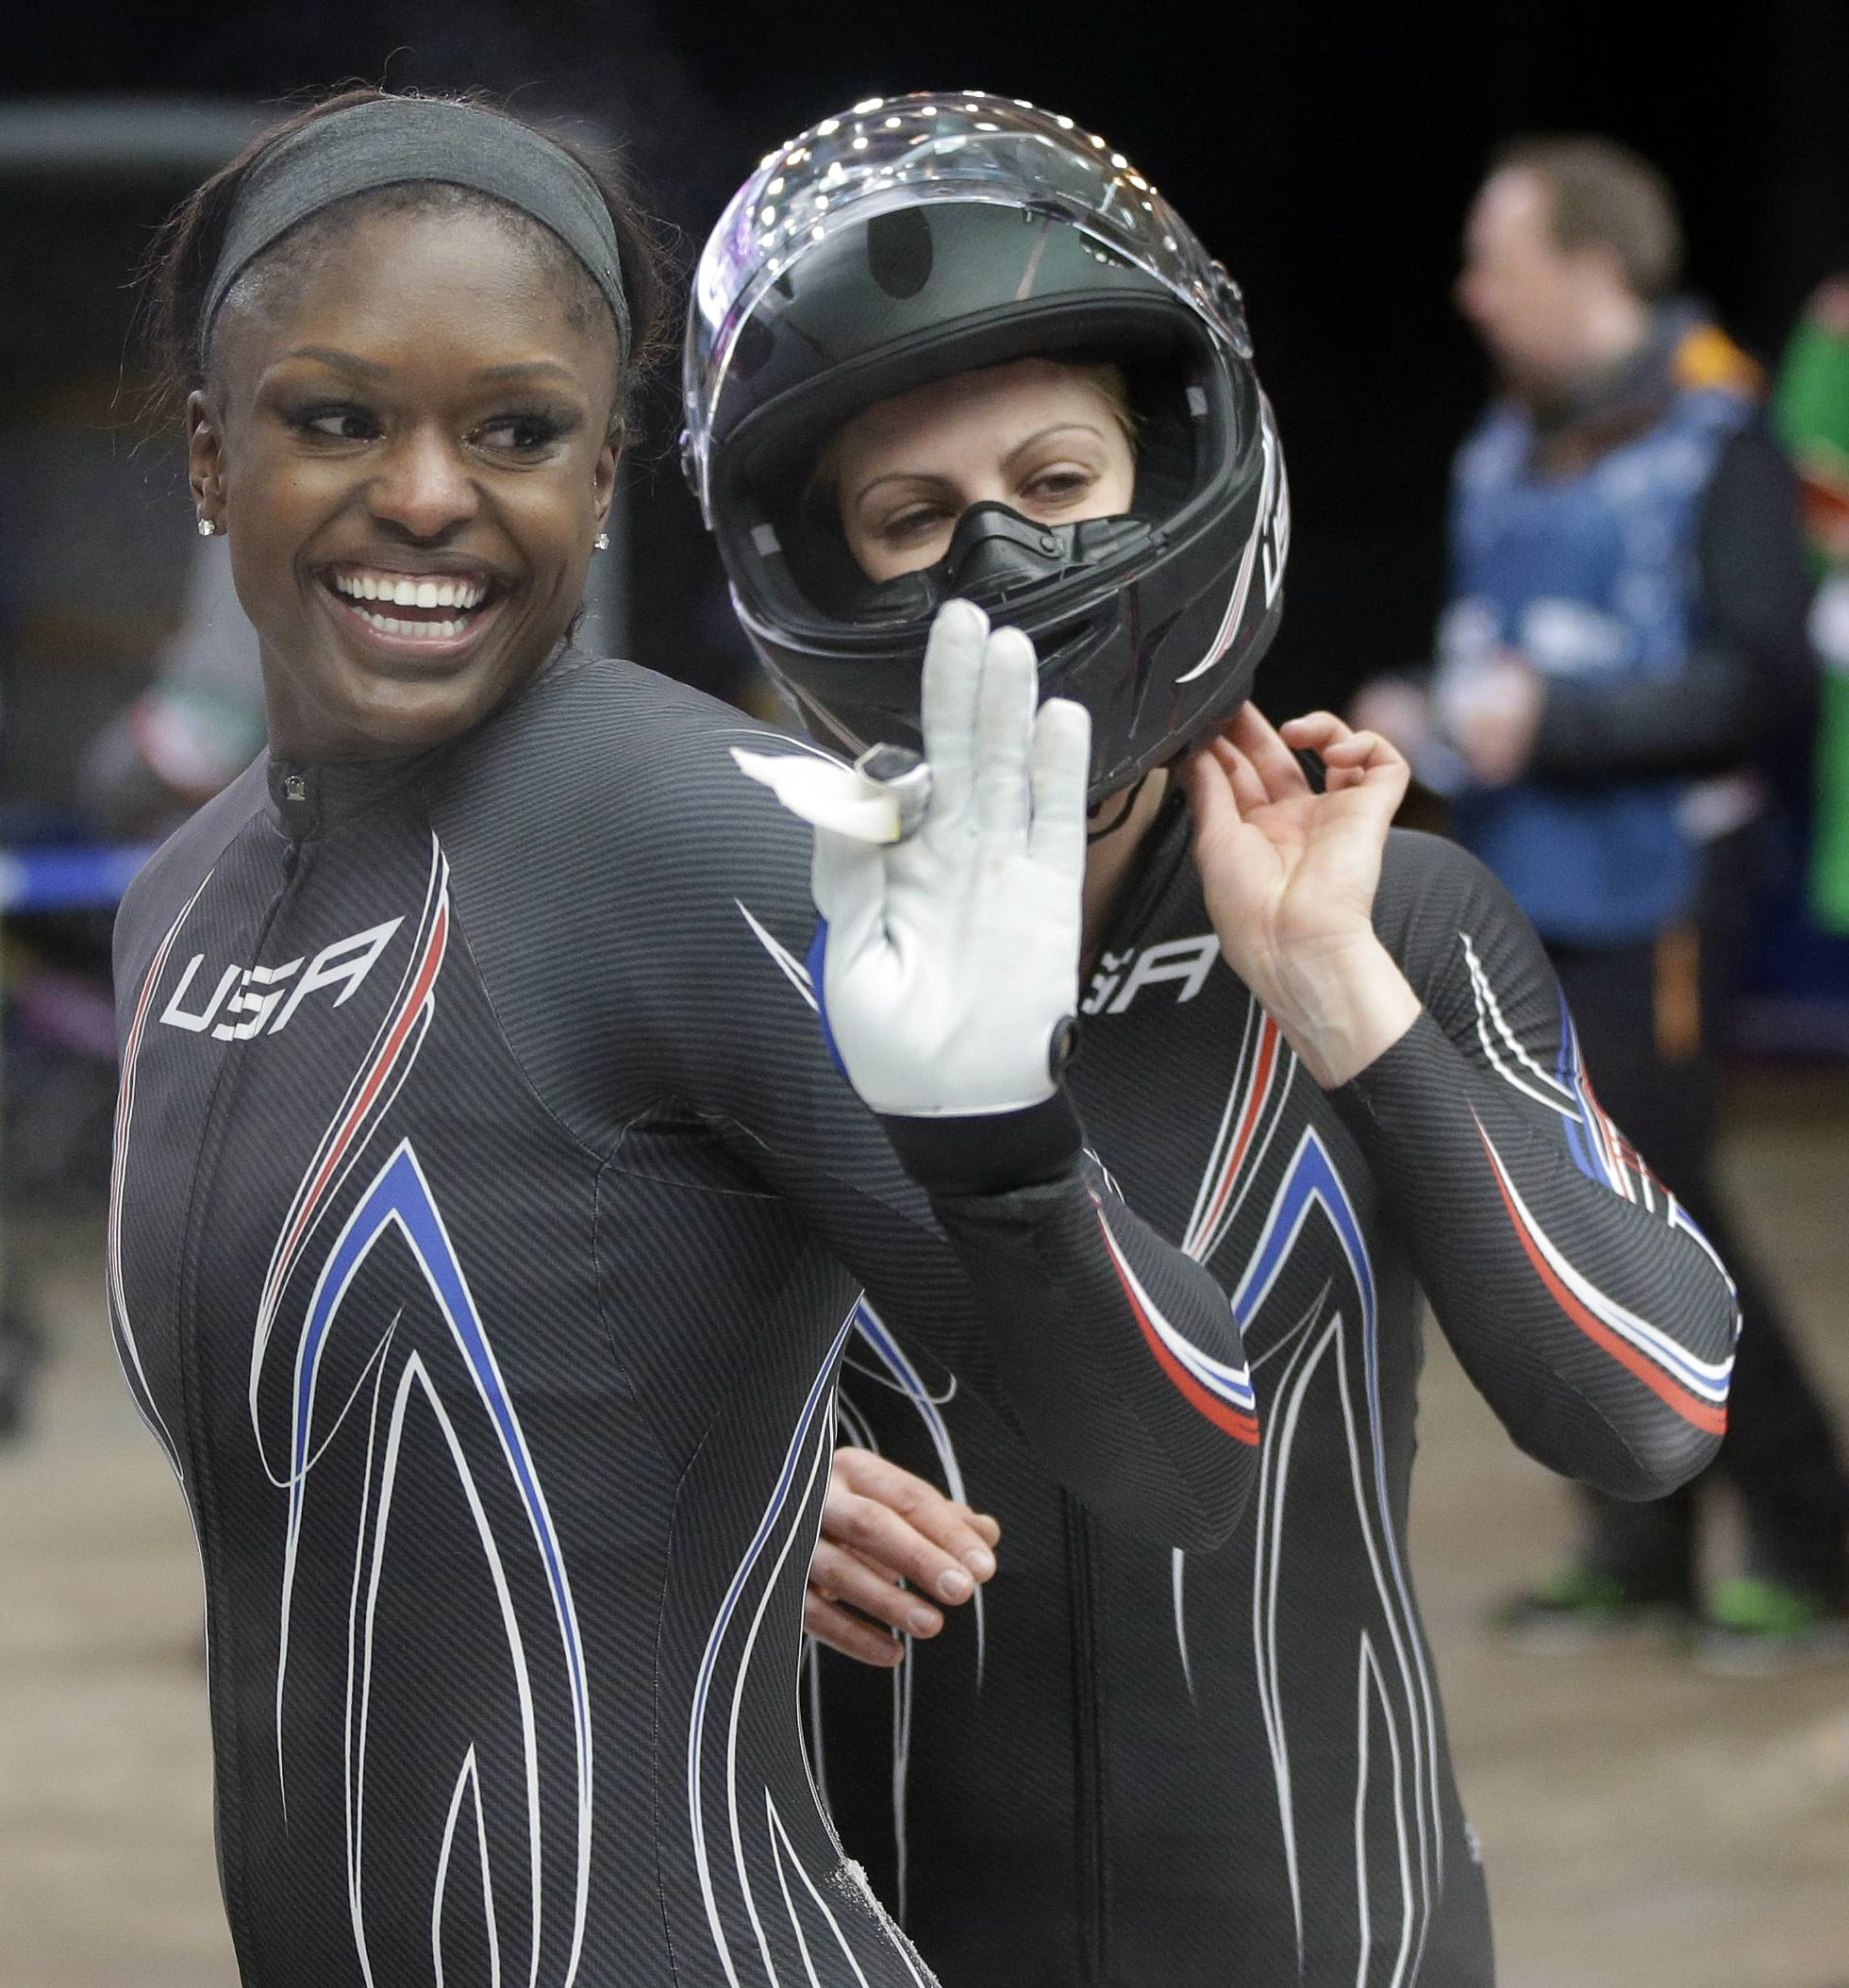 The team from the United States USA-2, piloted by Jamie Greubel with brakeman Aja Evans, left, wave to fans after their second run during the women's two-man bobsled competition.